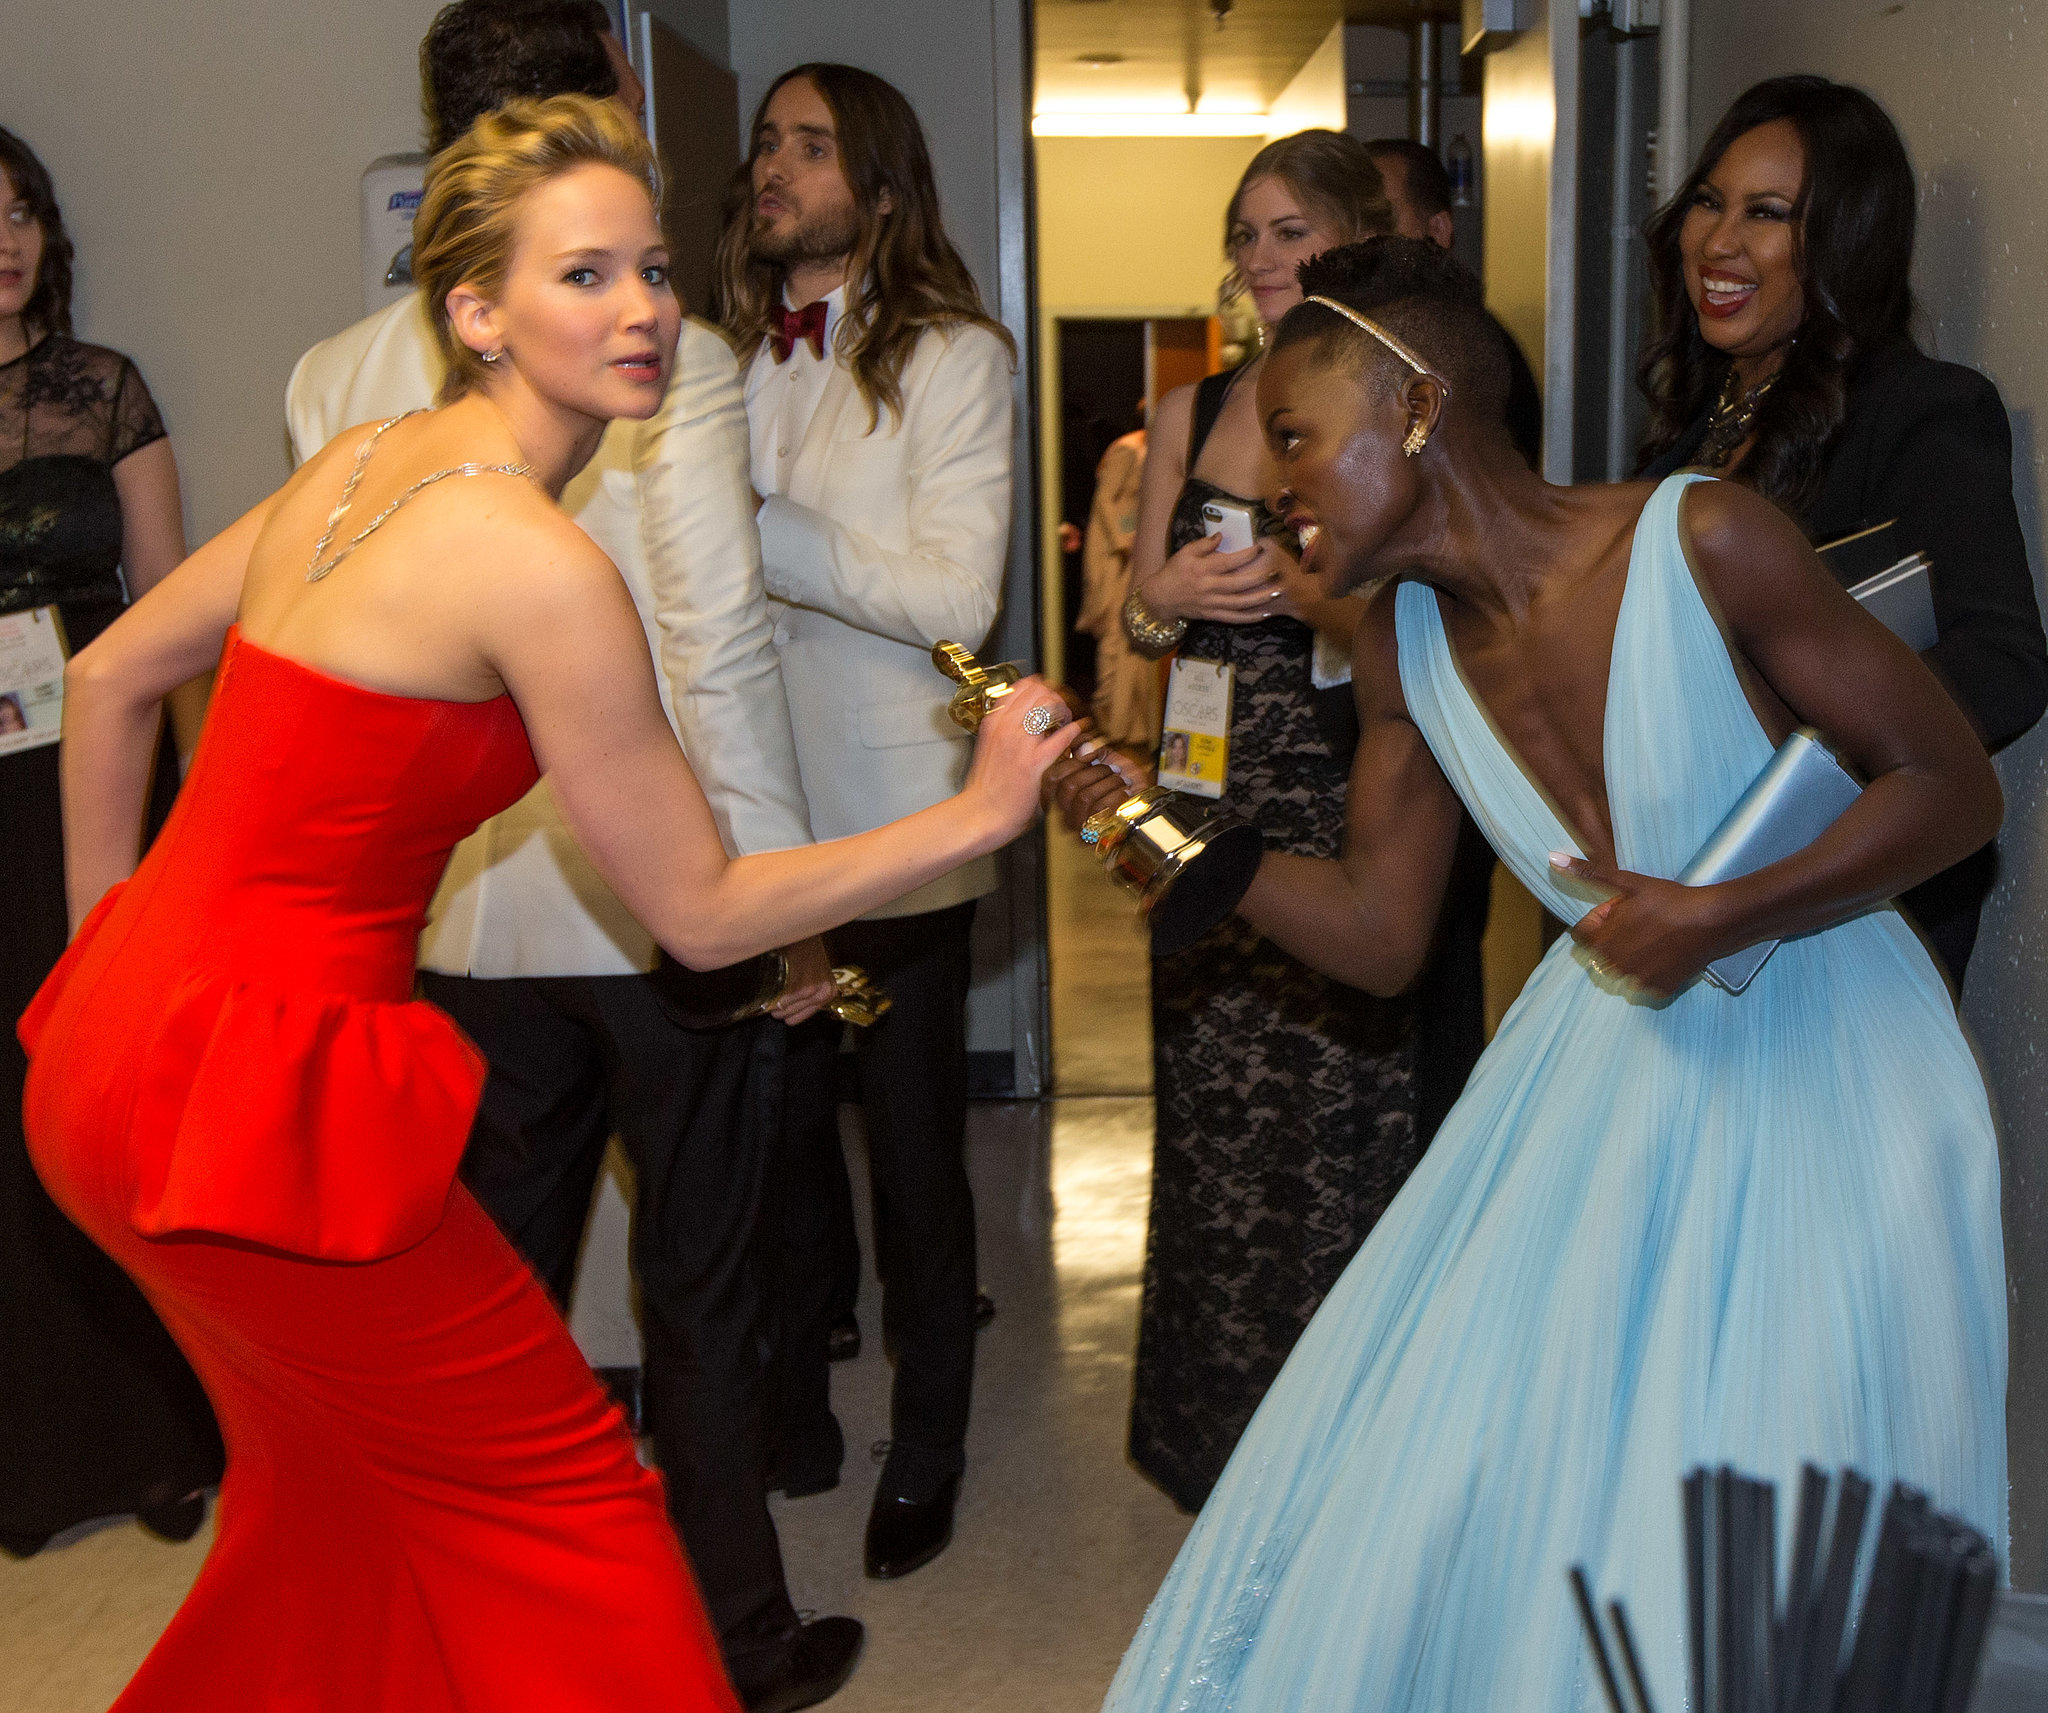 Jennifer Lawrence got grabby backstage when she tried to take Lupita Nyong'o's